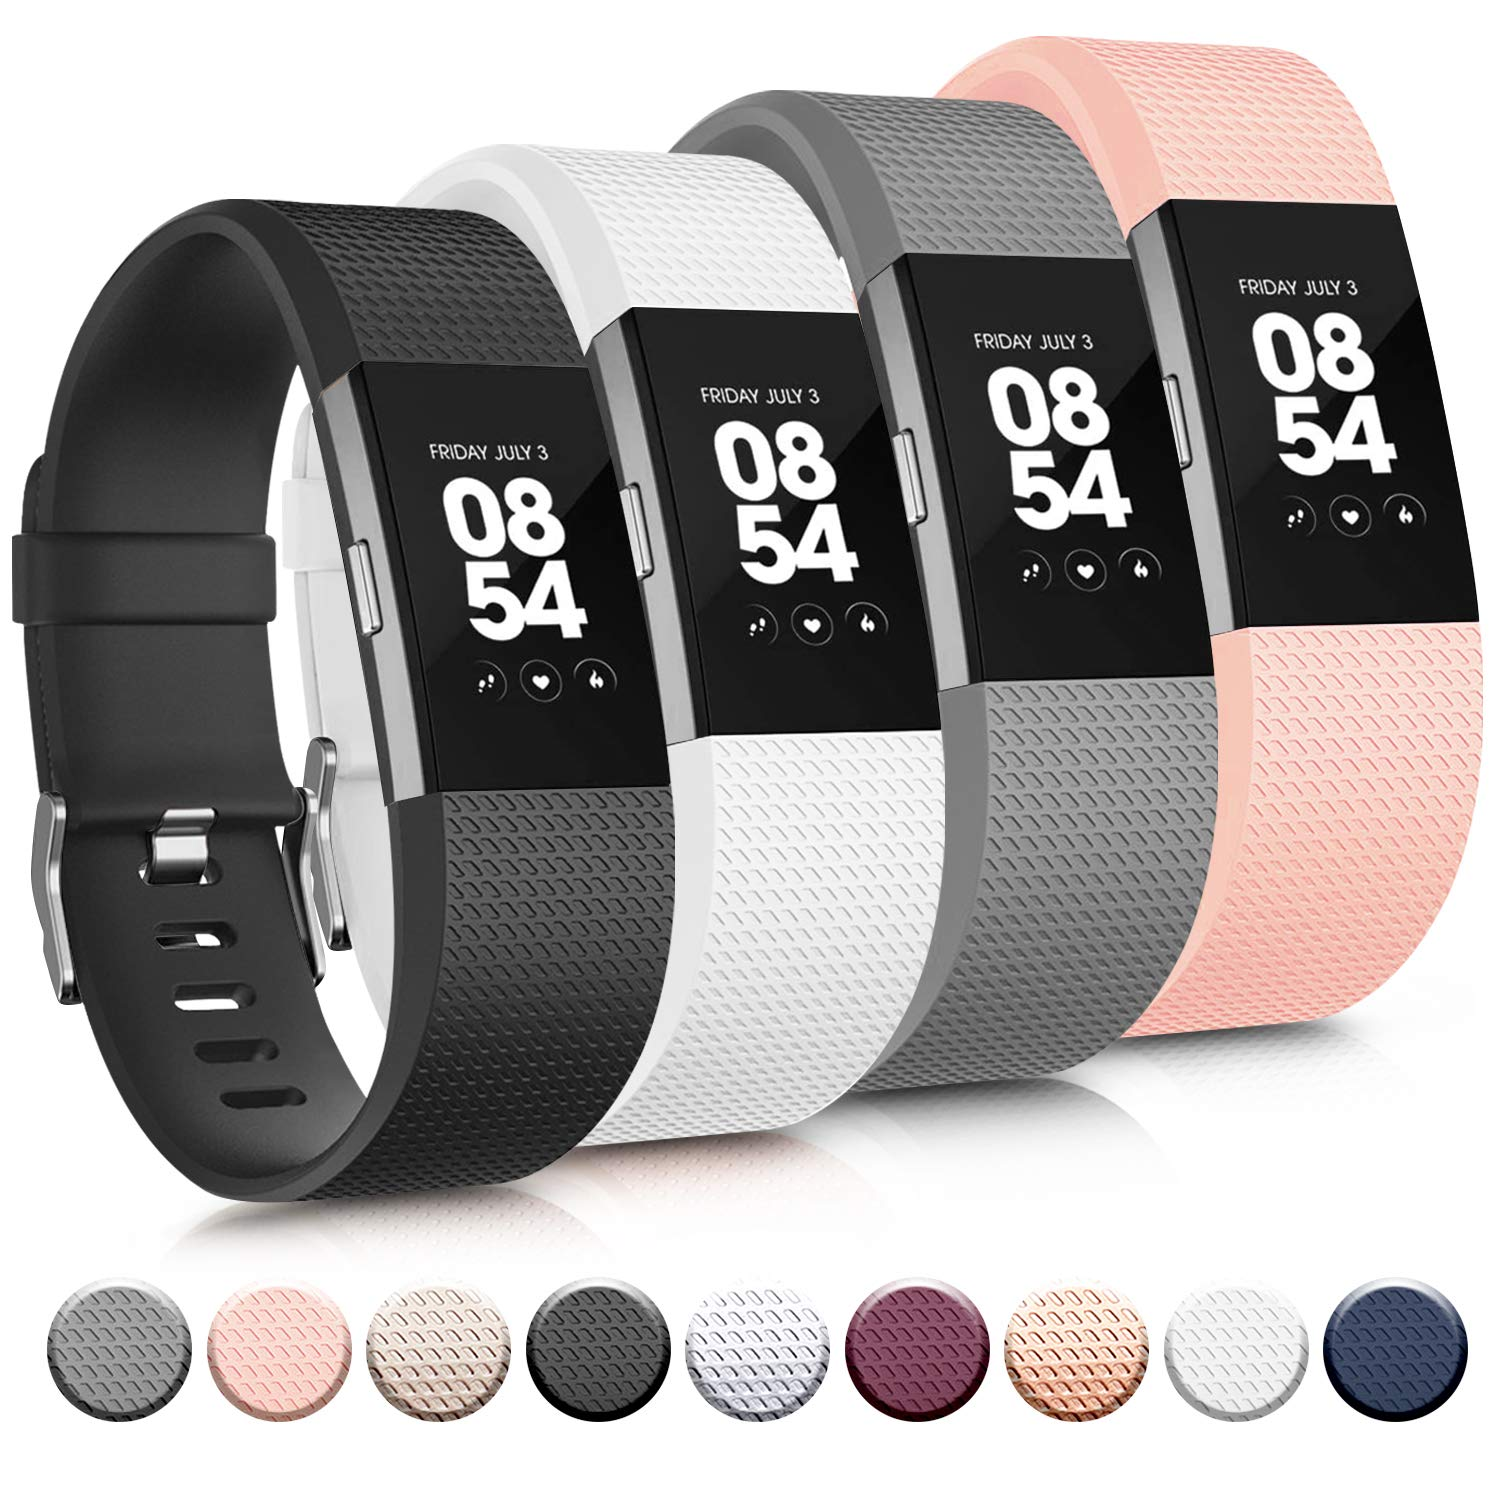 4 Mallas Large para Fitbit Charge 2 Blanco / Negro / Gris /